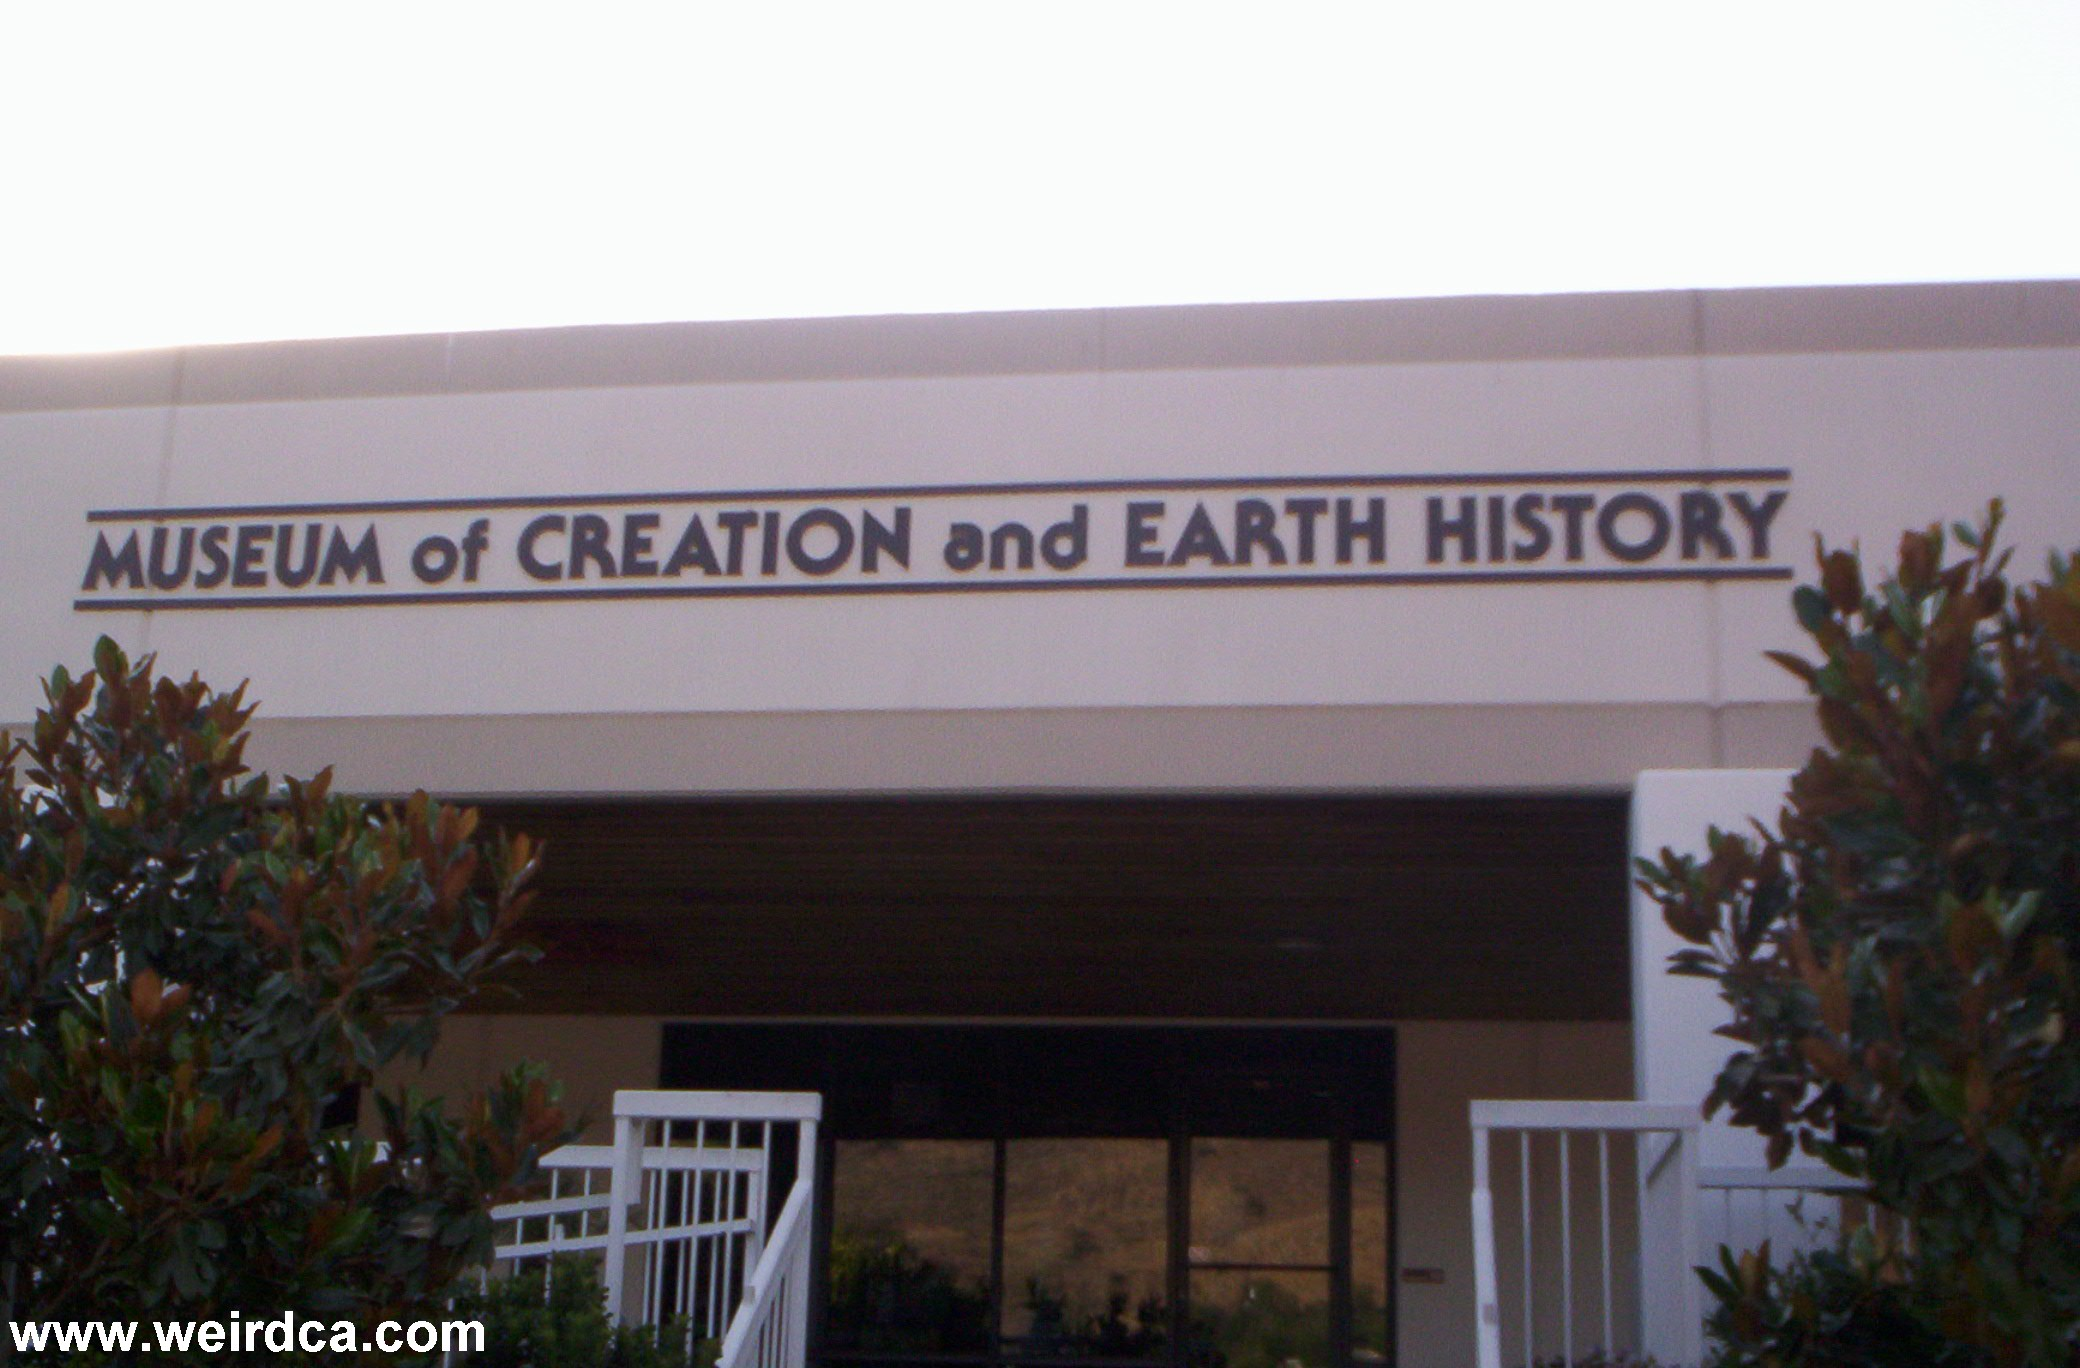 Museum of Creation and Earth History, east of San Diego